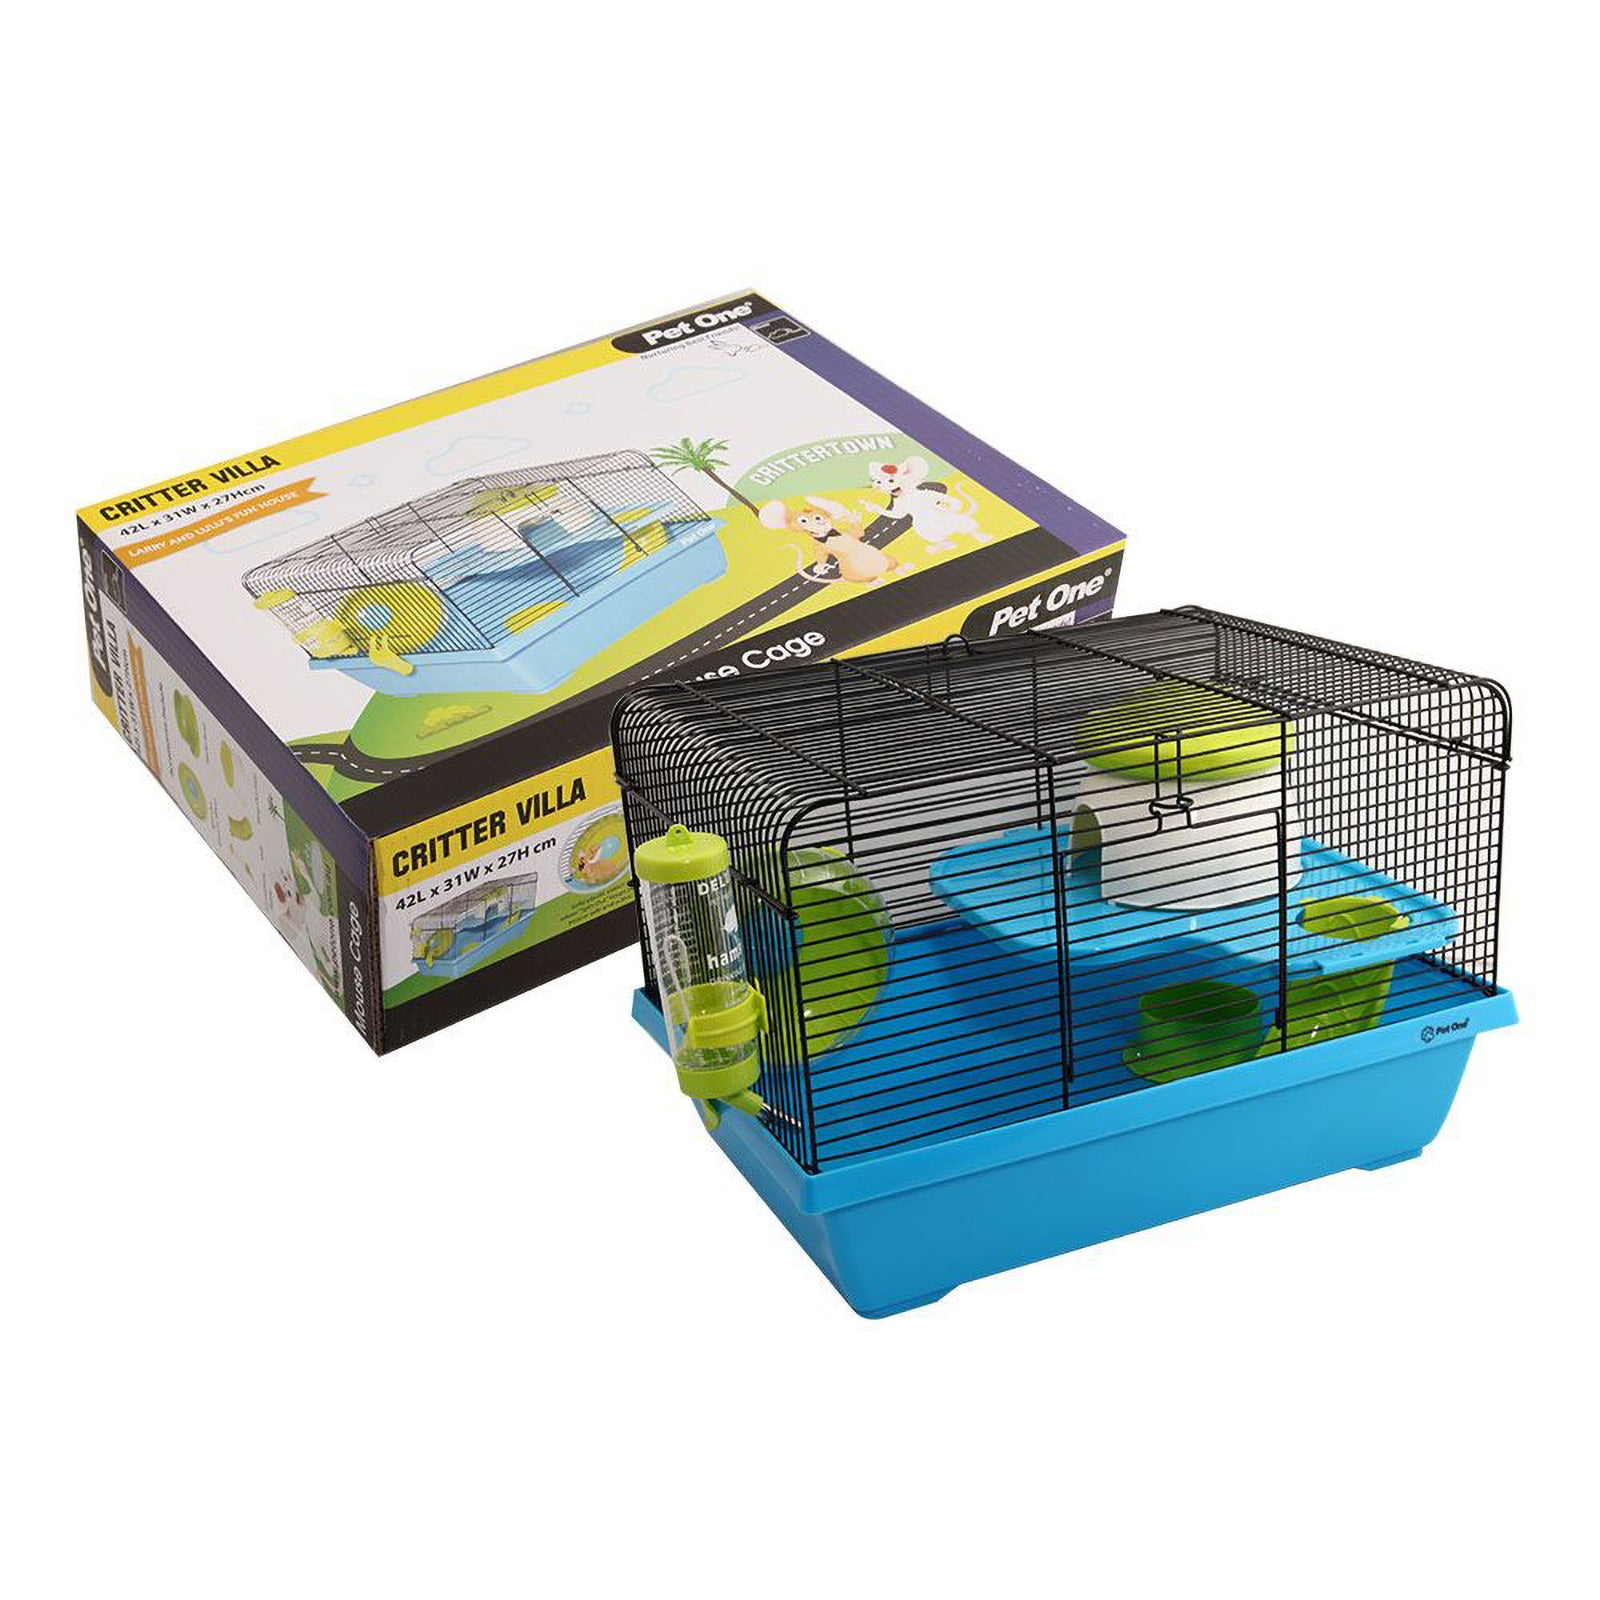 Pet One Critter Villa Mouse Cage